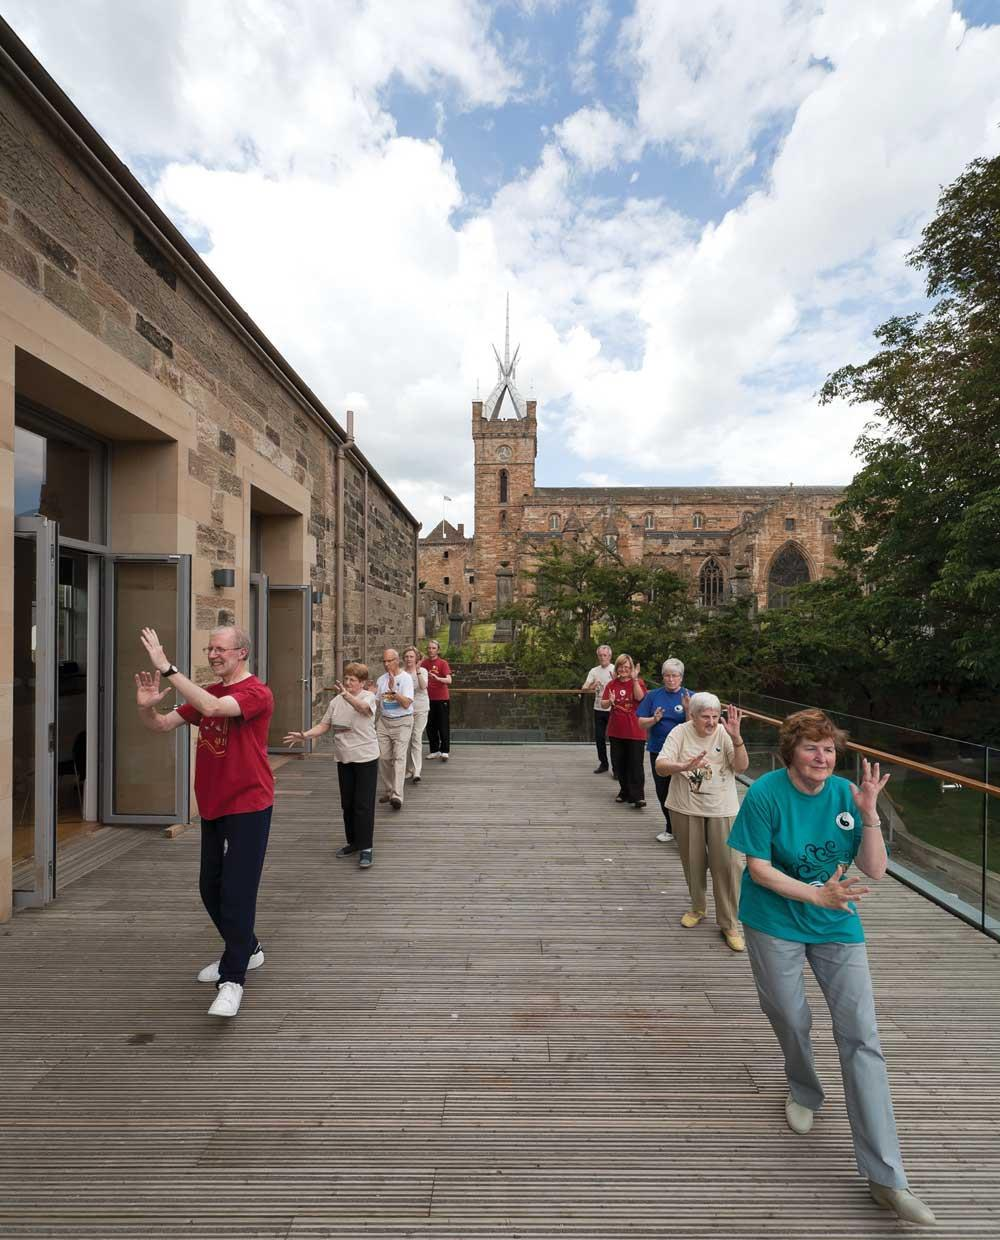 Linlithgow Burgh Halls In West Lothian, Scotland, By